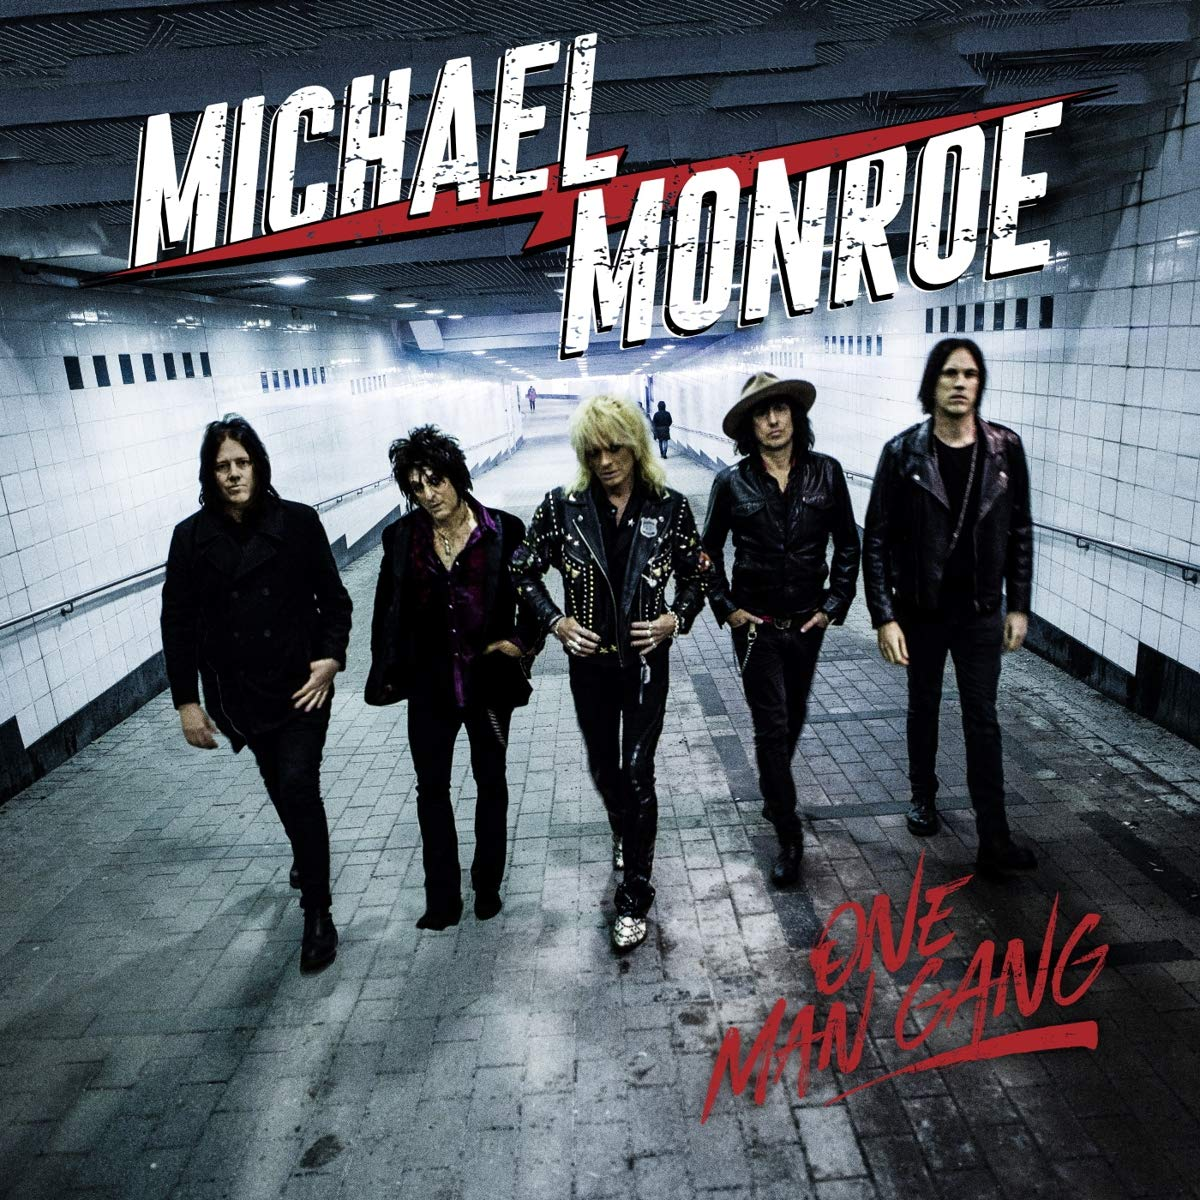 Michael Monroe - One Man Gang [LP] (Colored Vinyl) - Urban Vinyl | Records, Headphones, and more.